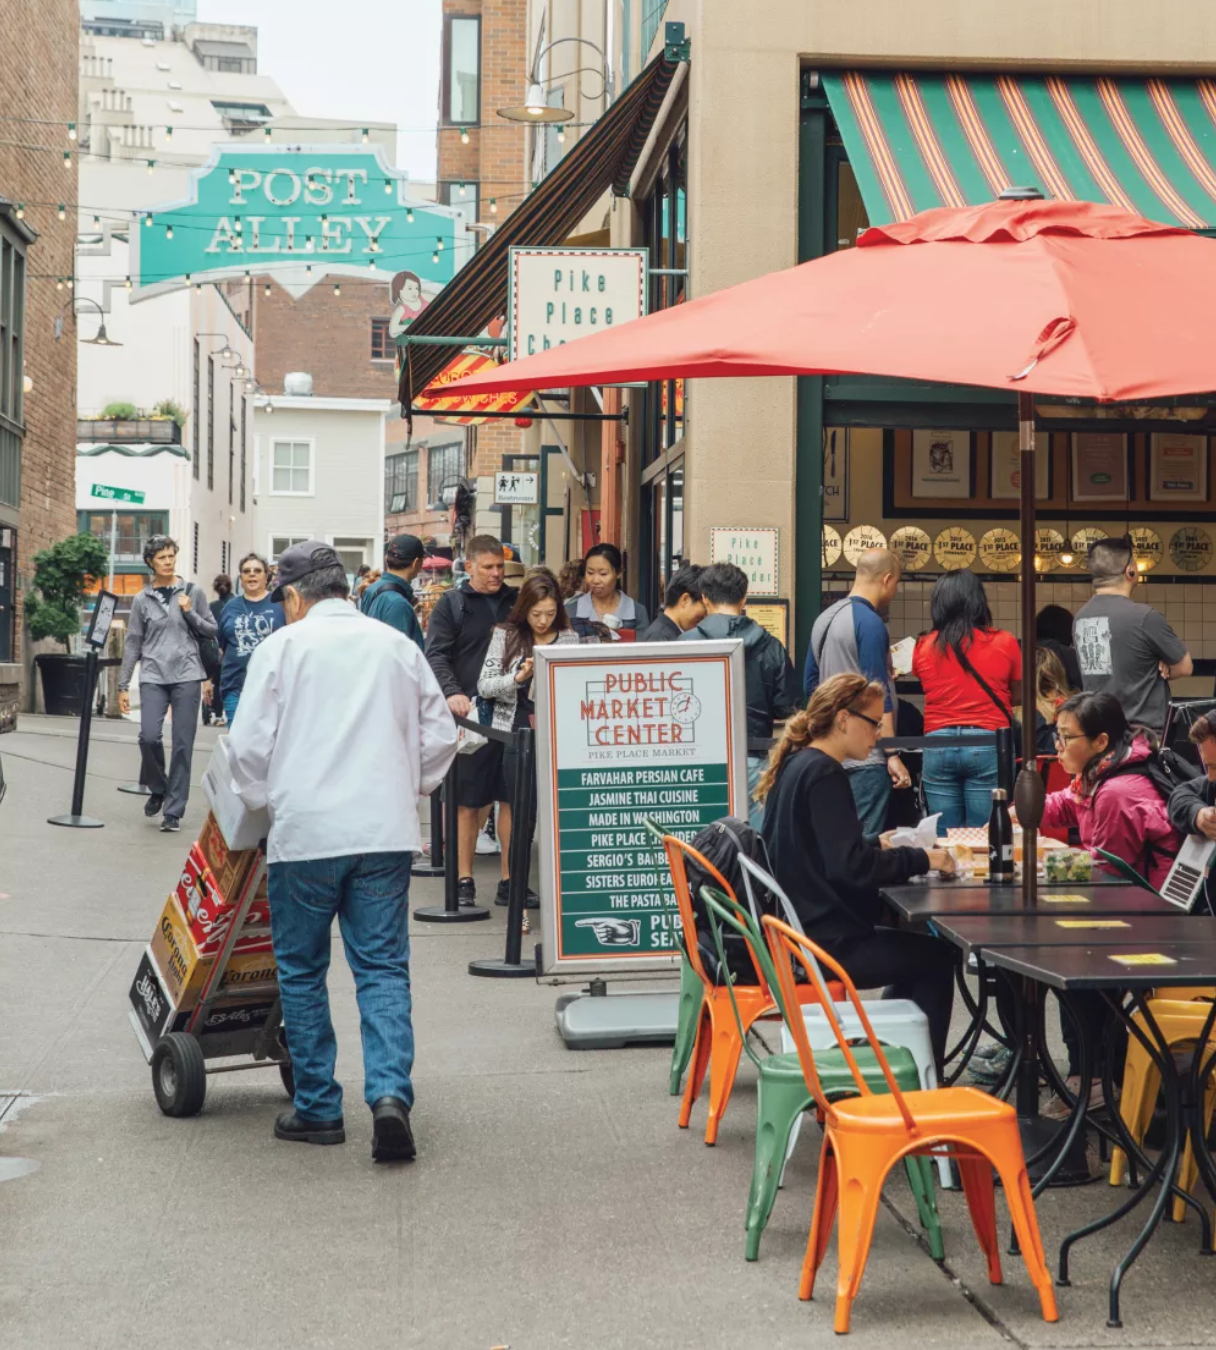 Crowds await bread bowl nirvana at Pike Place Chowder (the seafood bisque is pretty good, too). IMAGE: AMBER FOUTS